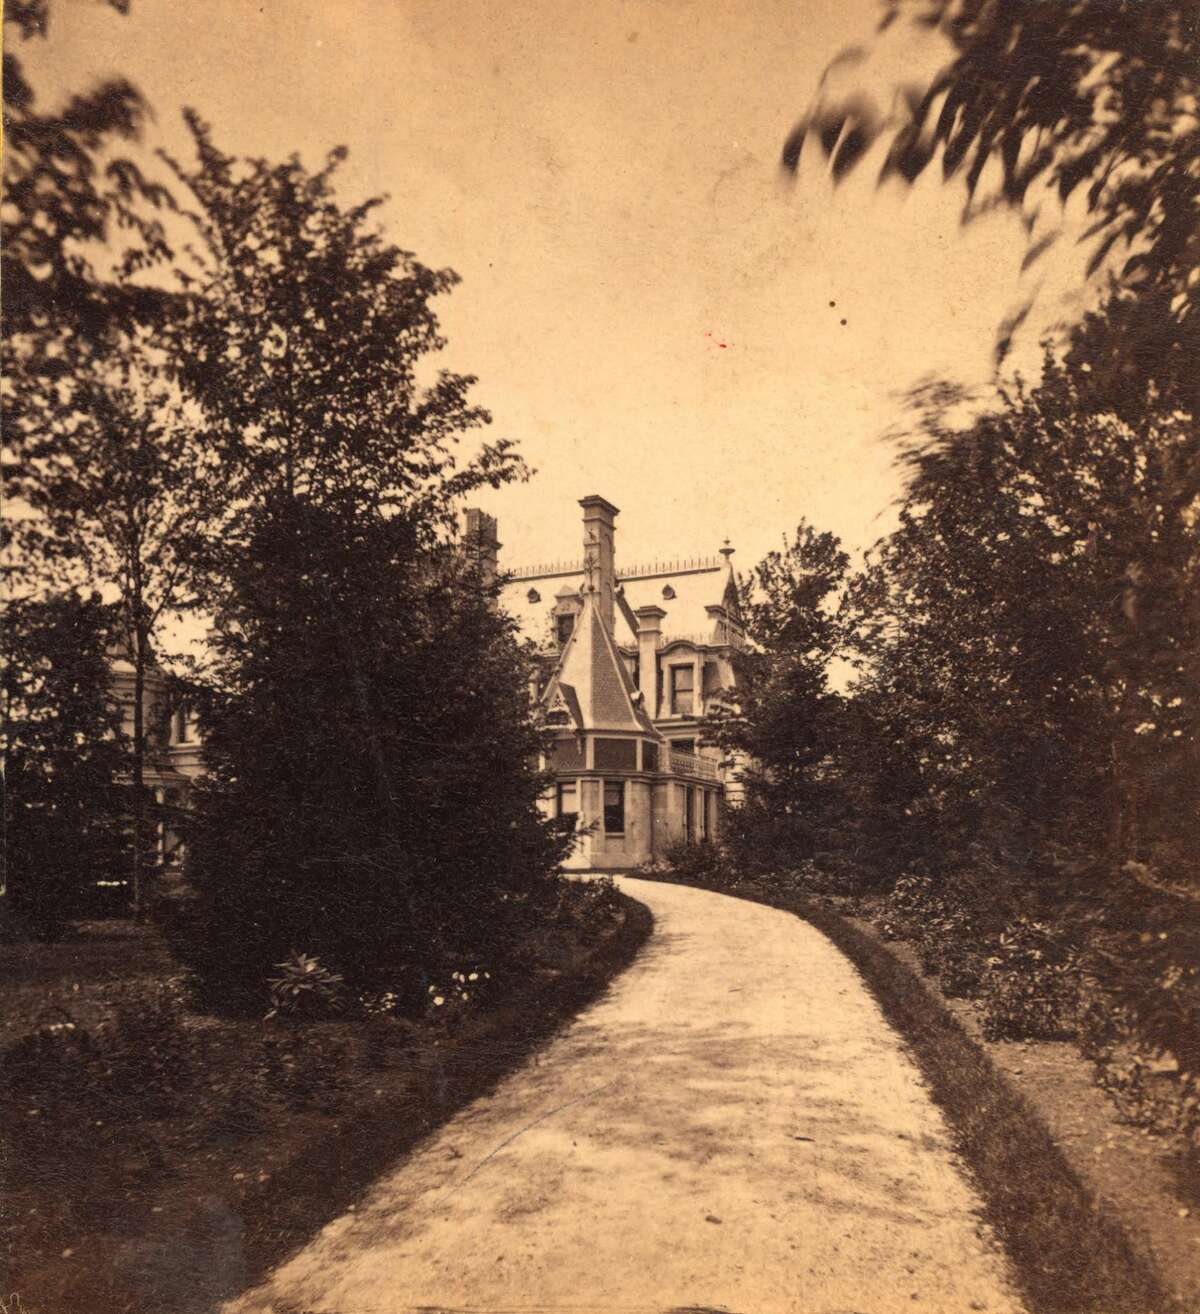 """The Lockwood-Matthews Mansion will host """"The Mansion's Secret Lives: Untold Stories From the Lockwood-Mathews Mansion, 1865-1960"""" on Sept. 12 at 2 p.m."""